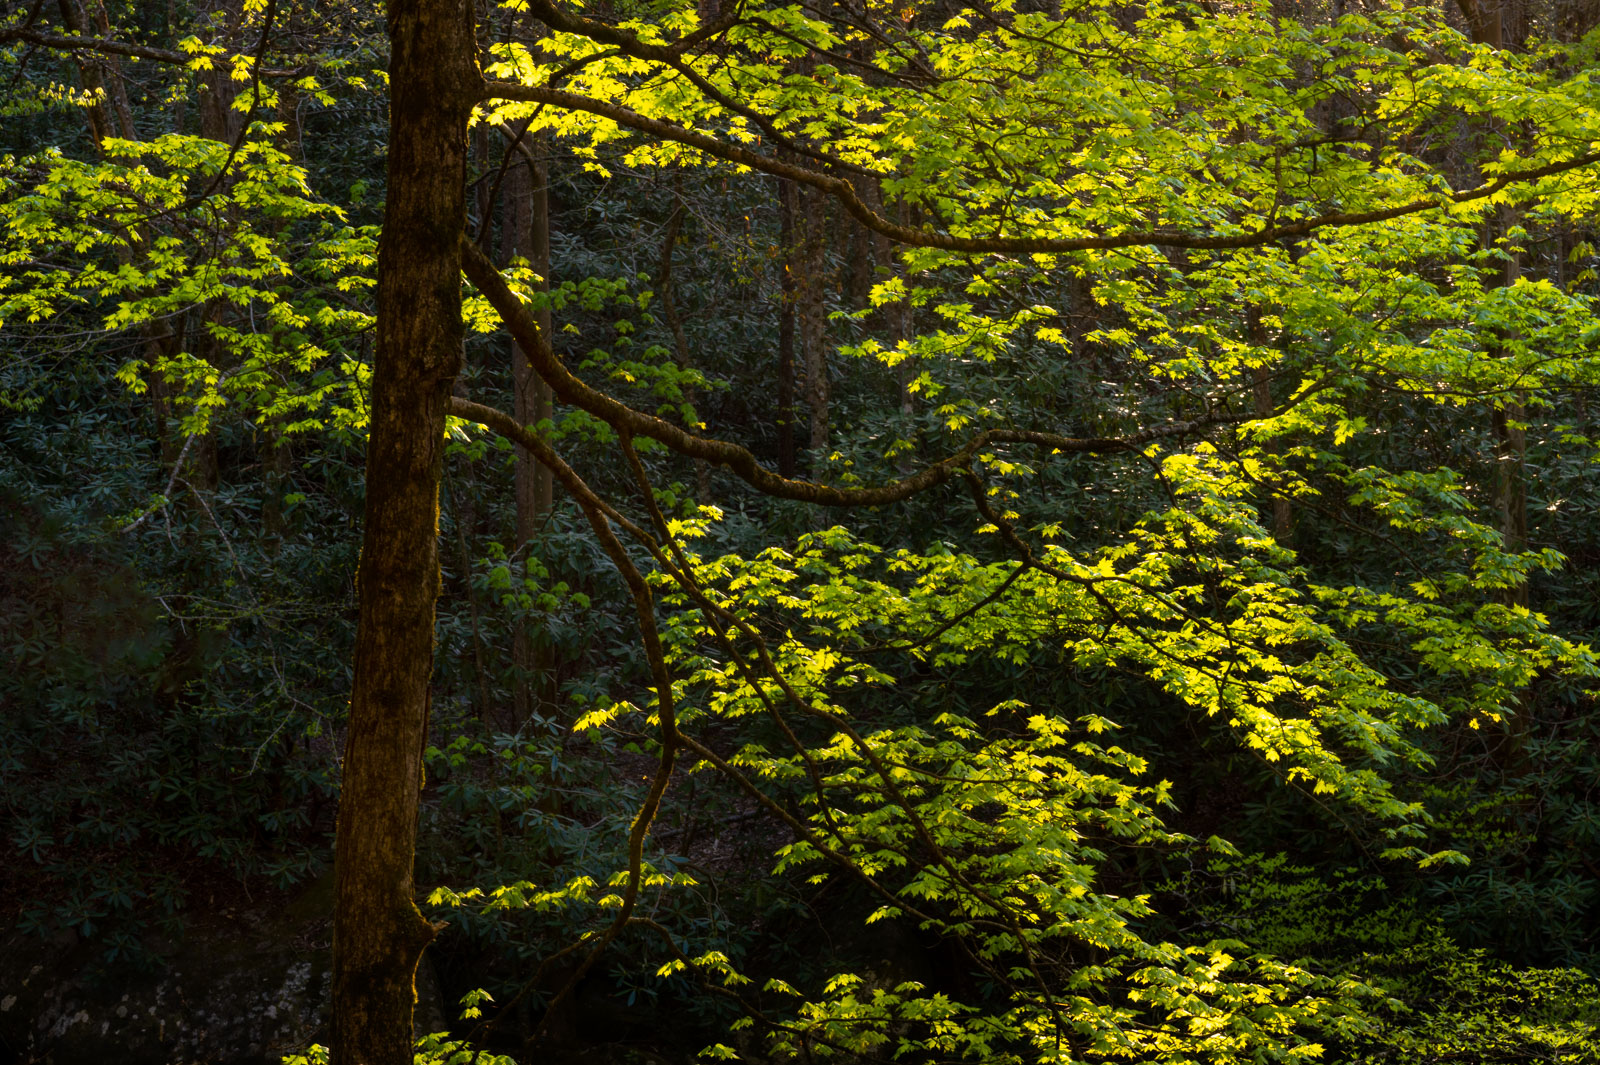 Spring glow in the forest of Great Smoky Mountains National Park.